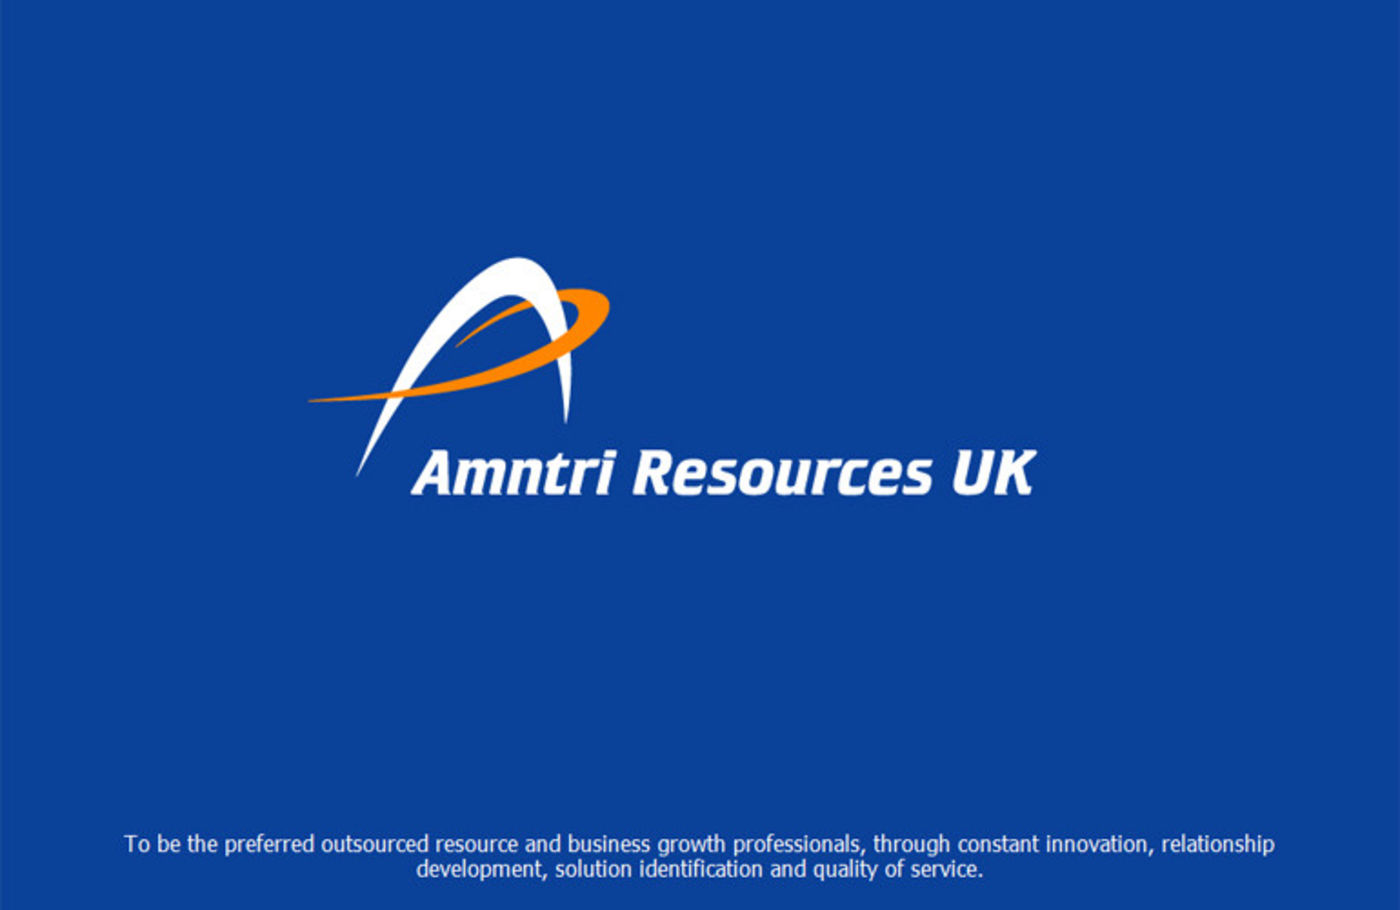 Amntri Resources UKF Welcome